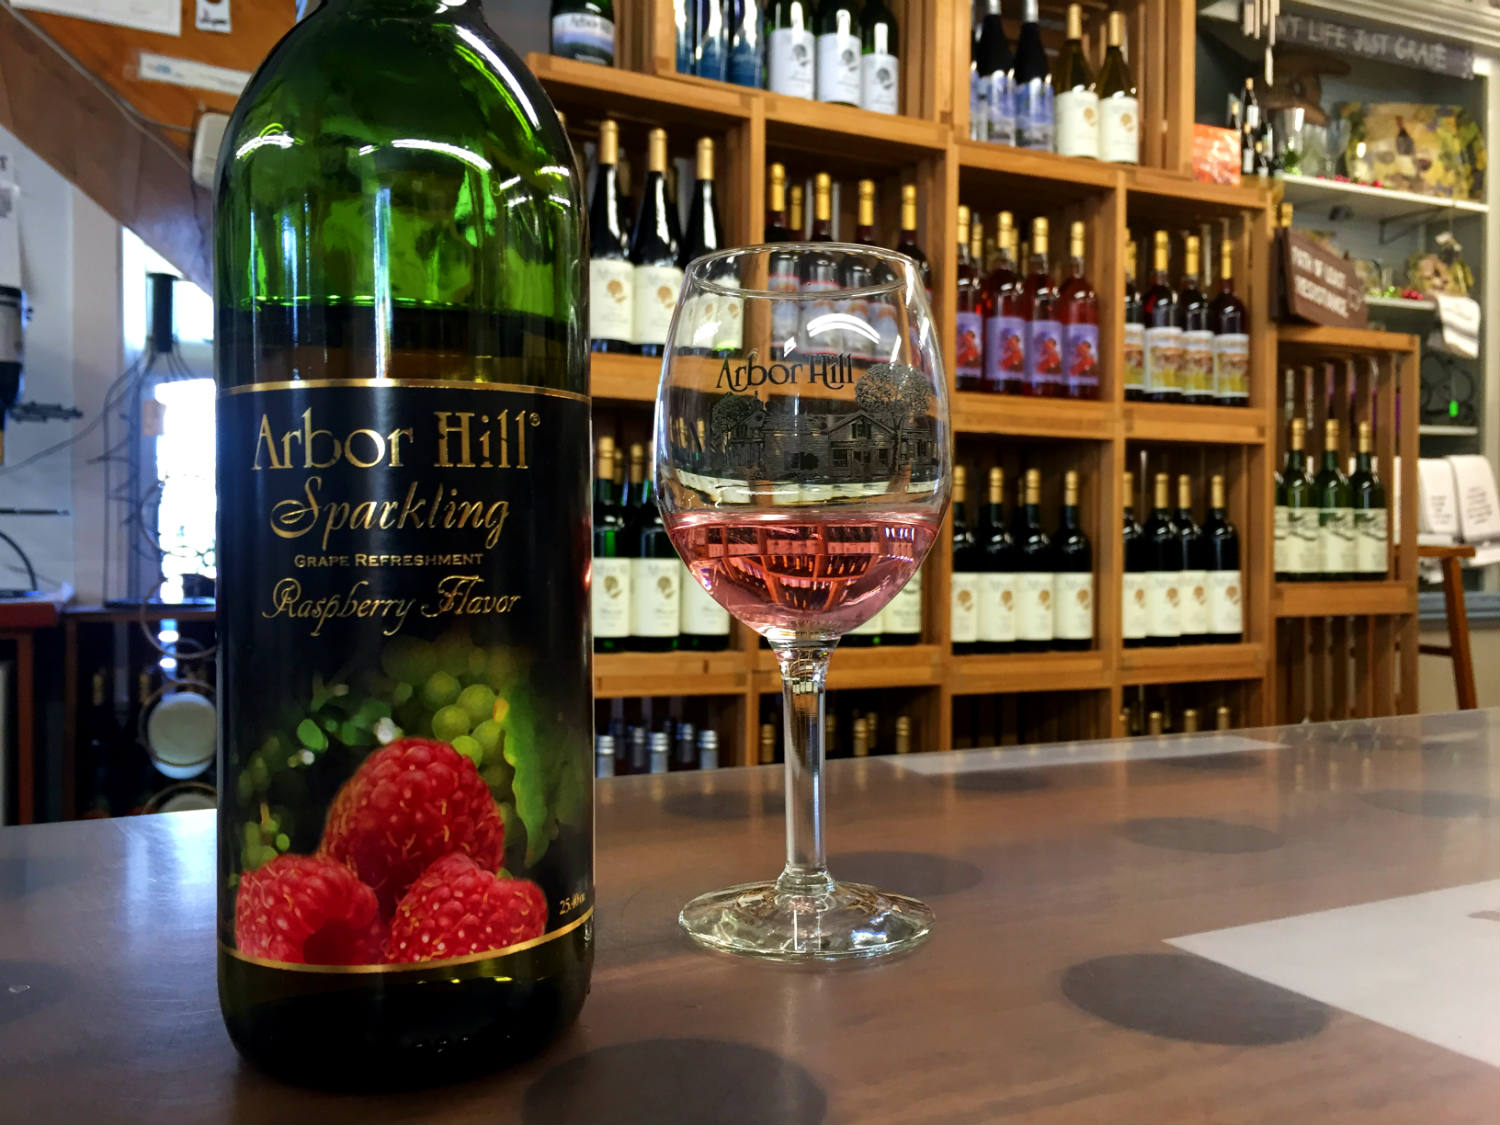 Sparkling Raspberry Juice at Arbor Hill Winery in Naples, New York